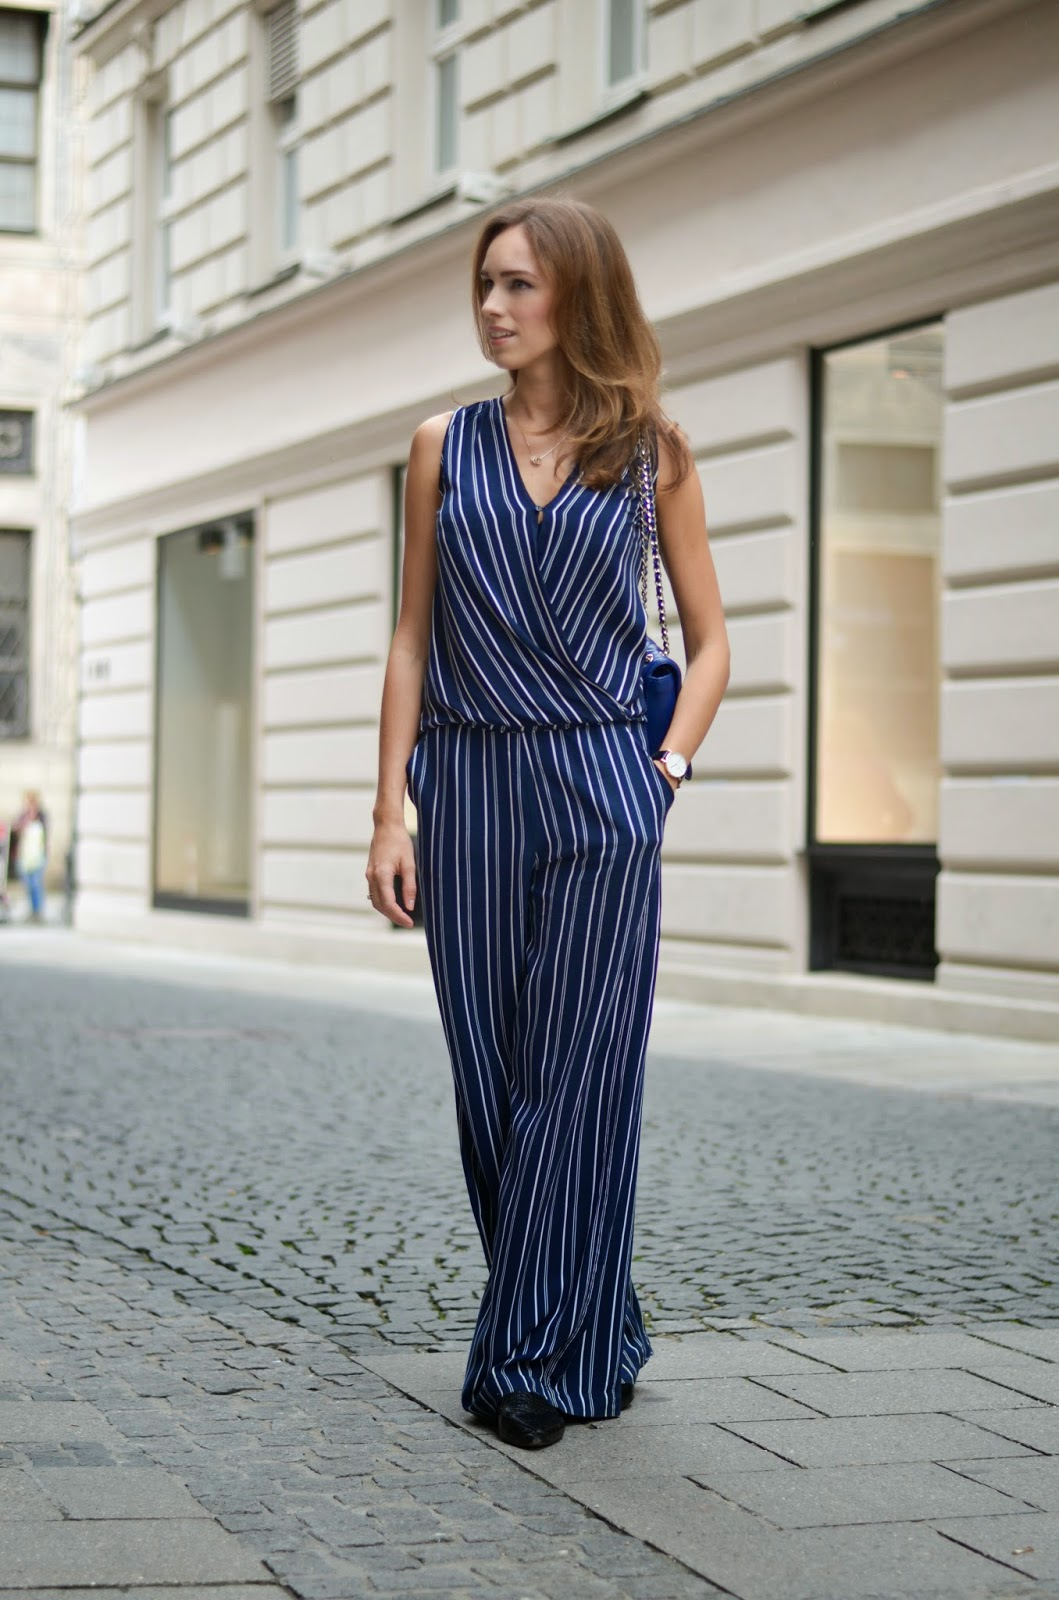 kristjaana mere street style summer outfit stripes